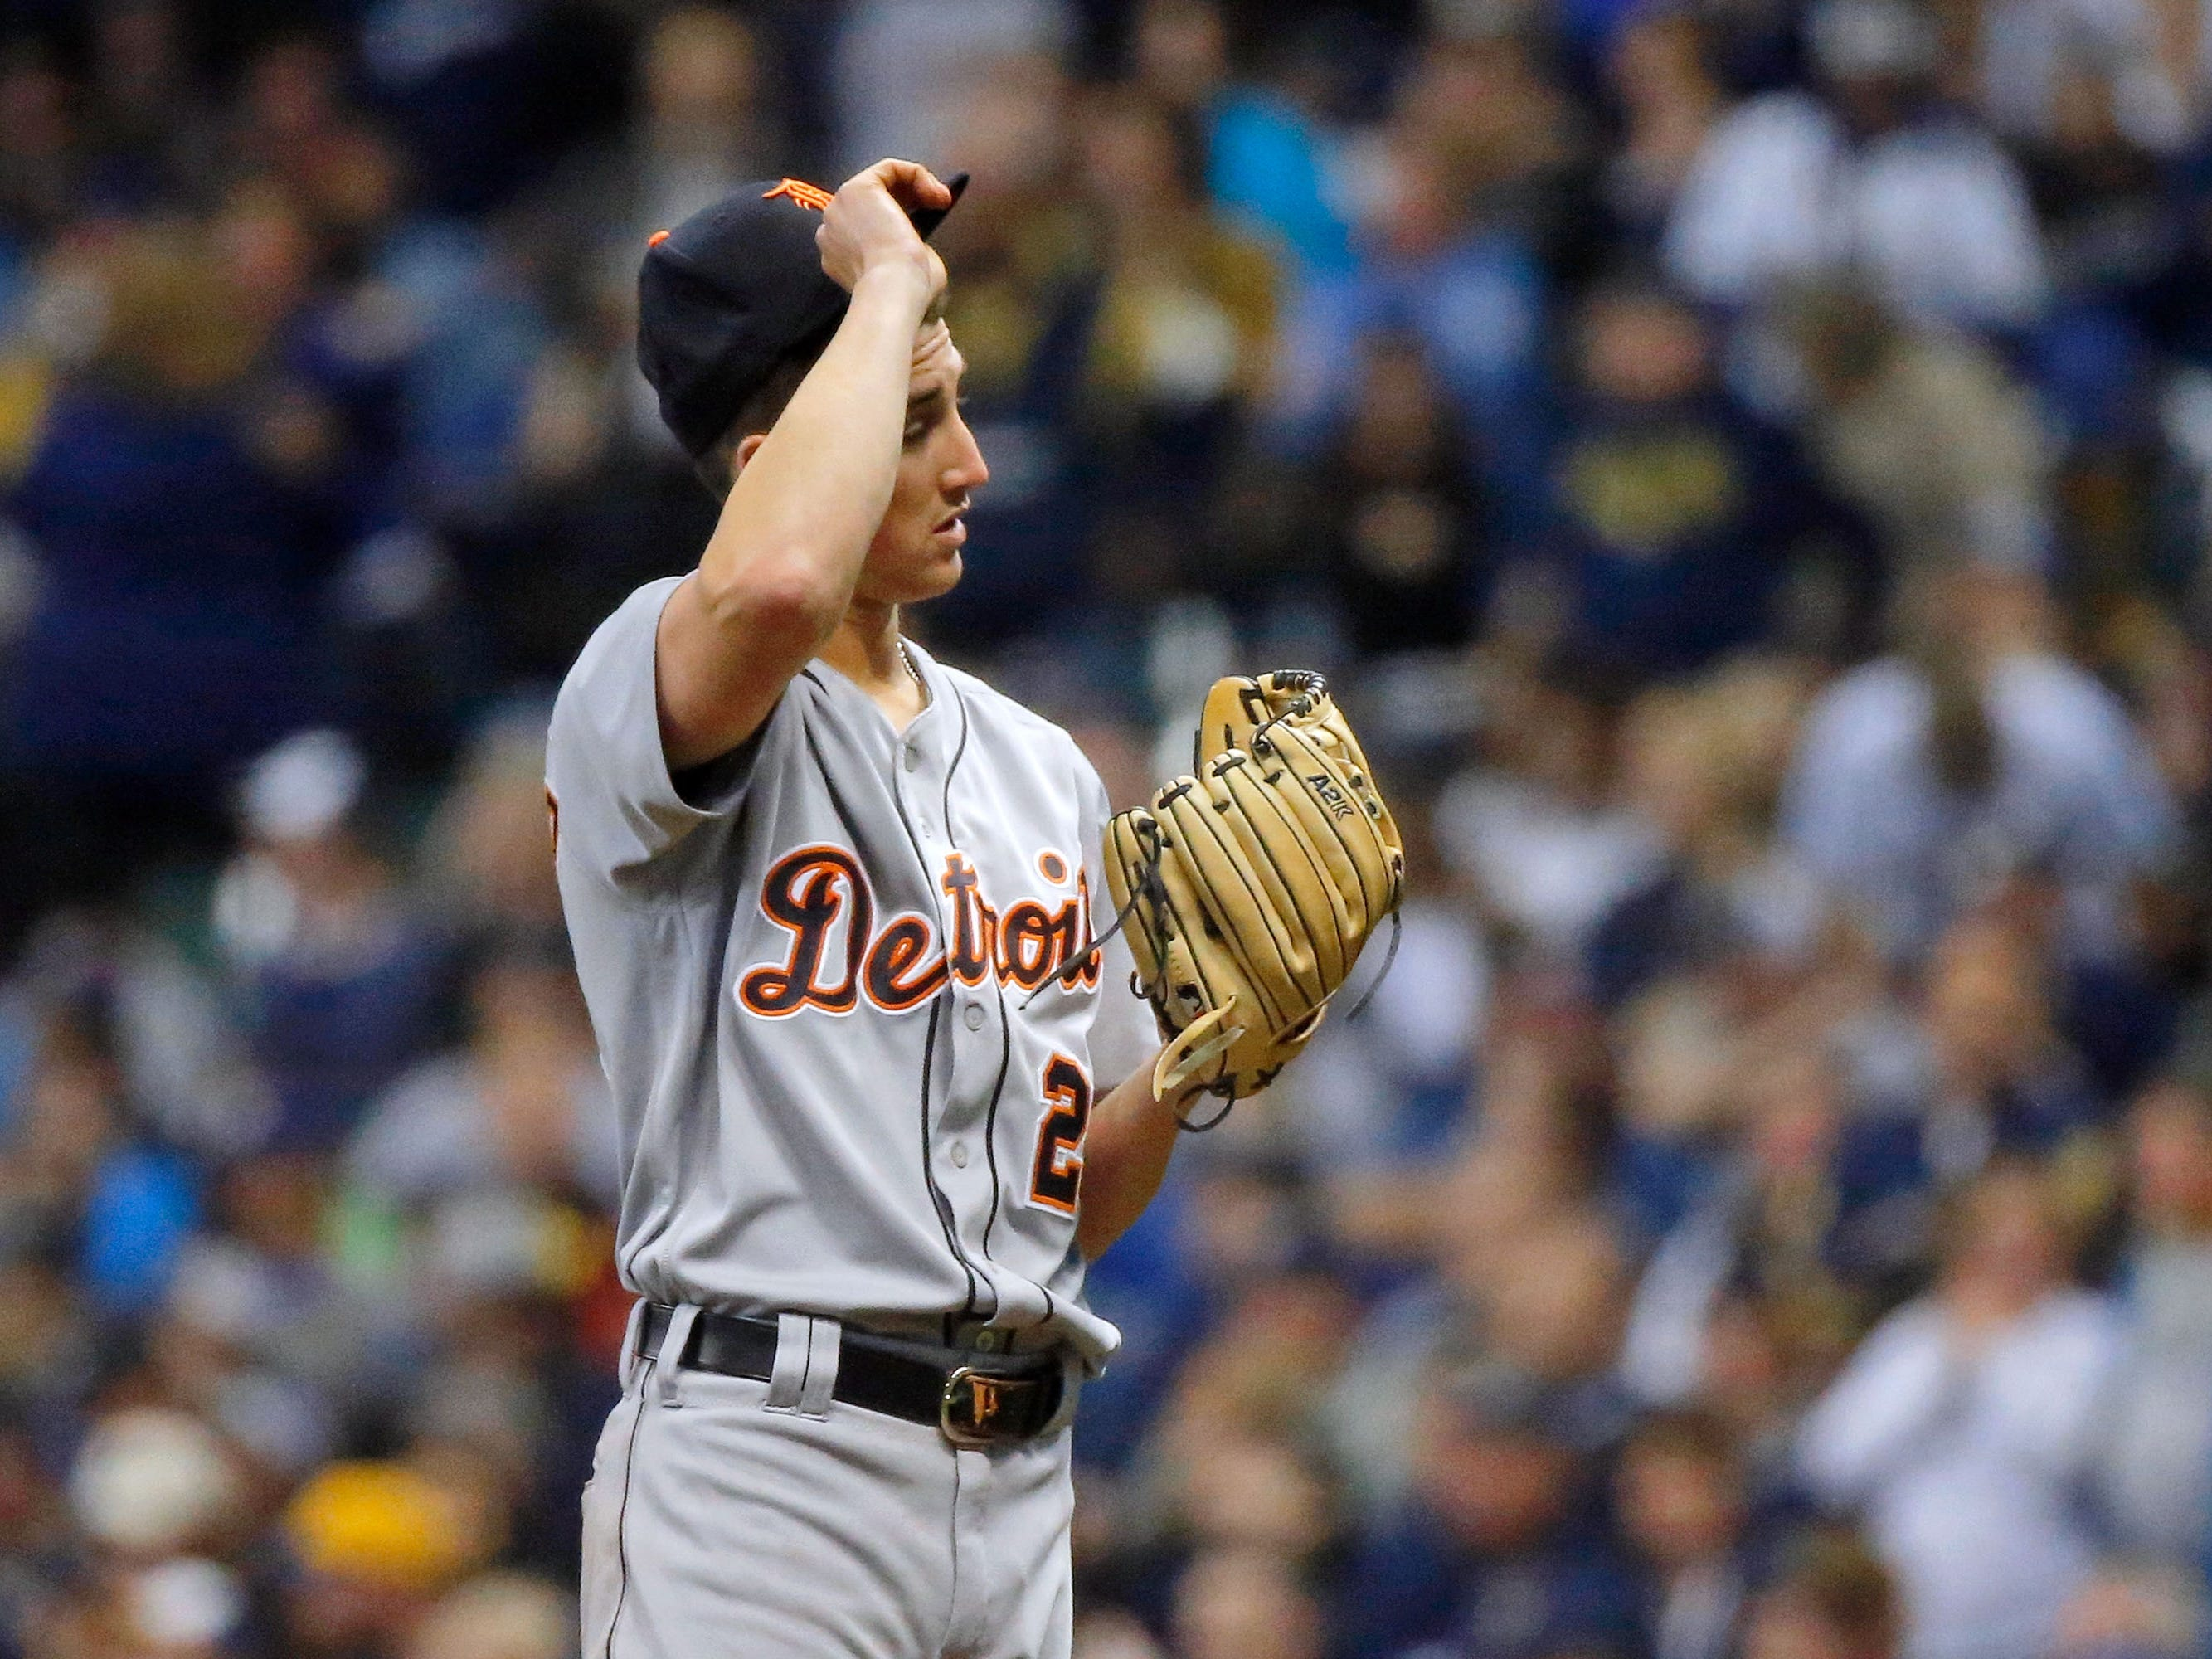 Detroit Tigers' Zac Reininger reacts after giving up a double to the Milwaukee Brewers during the seventh inning at Miller Park on Sept. 30, 2018.